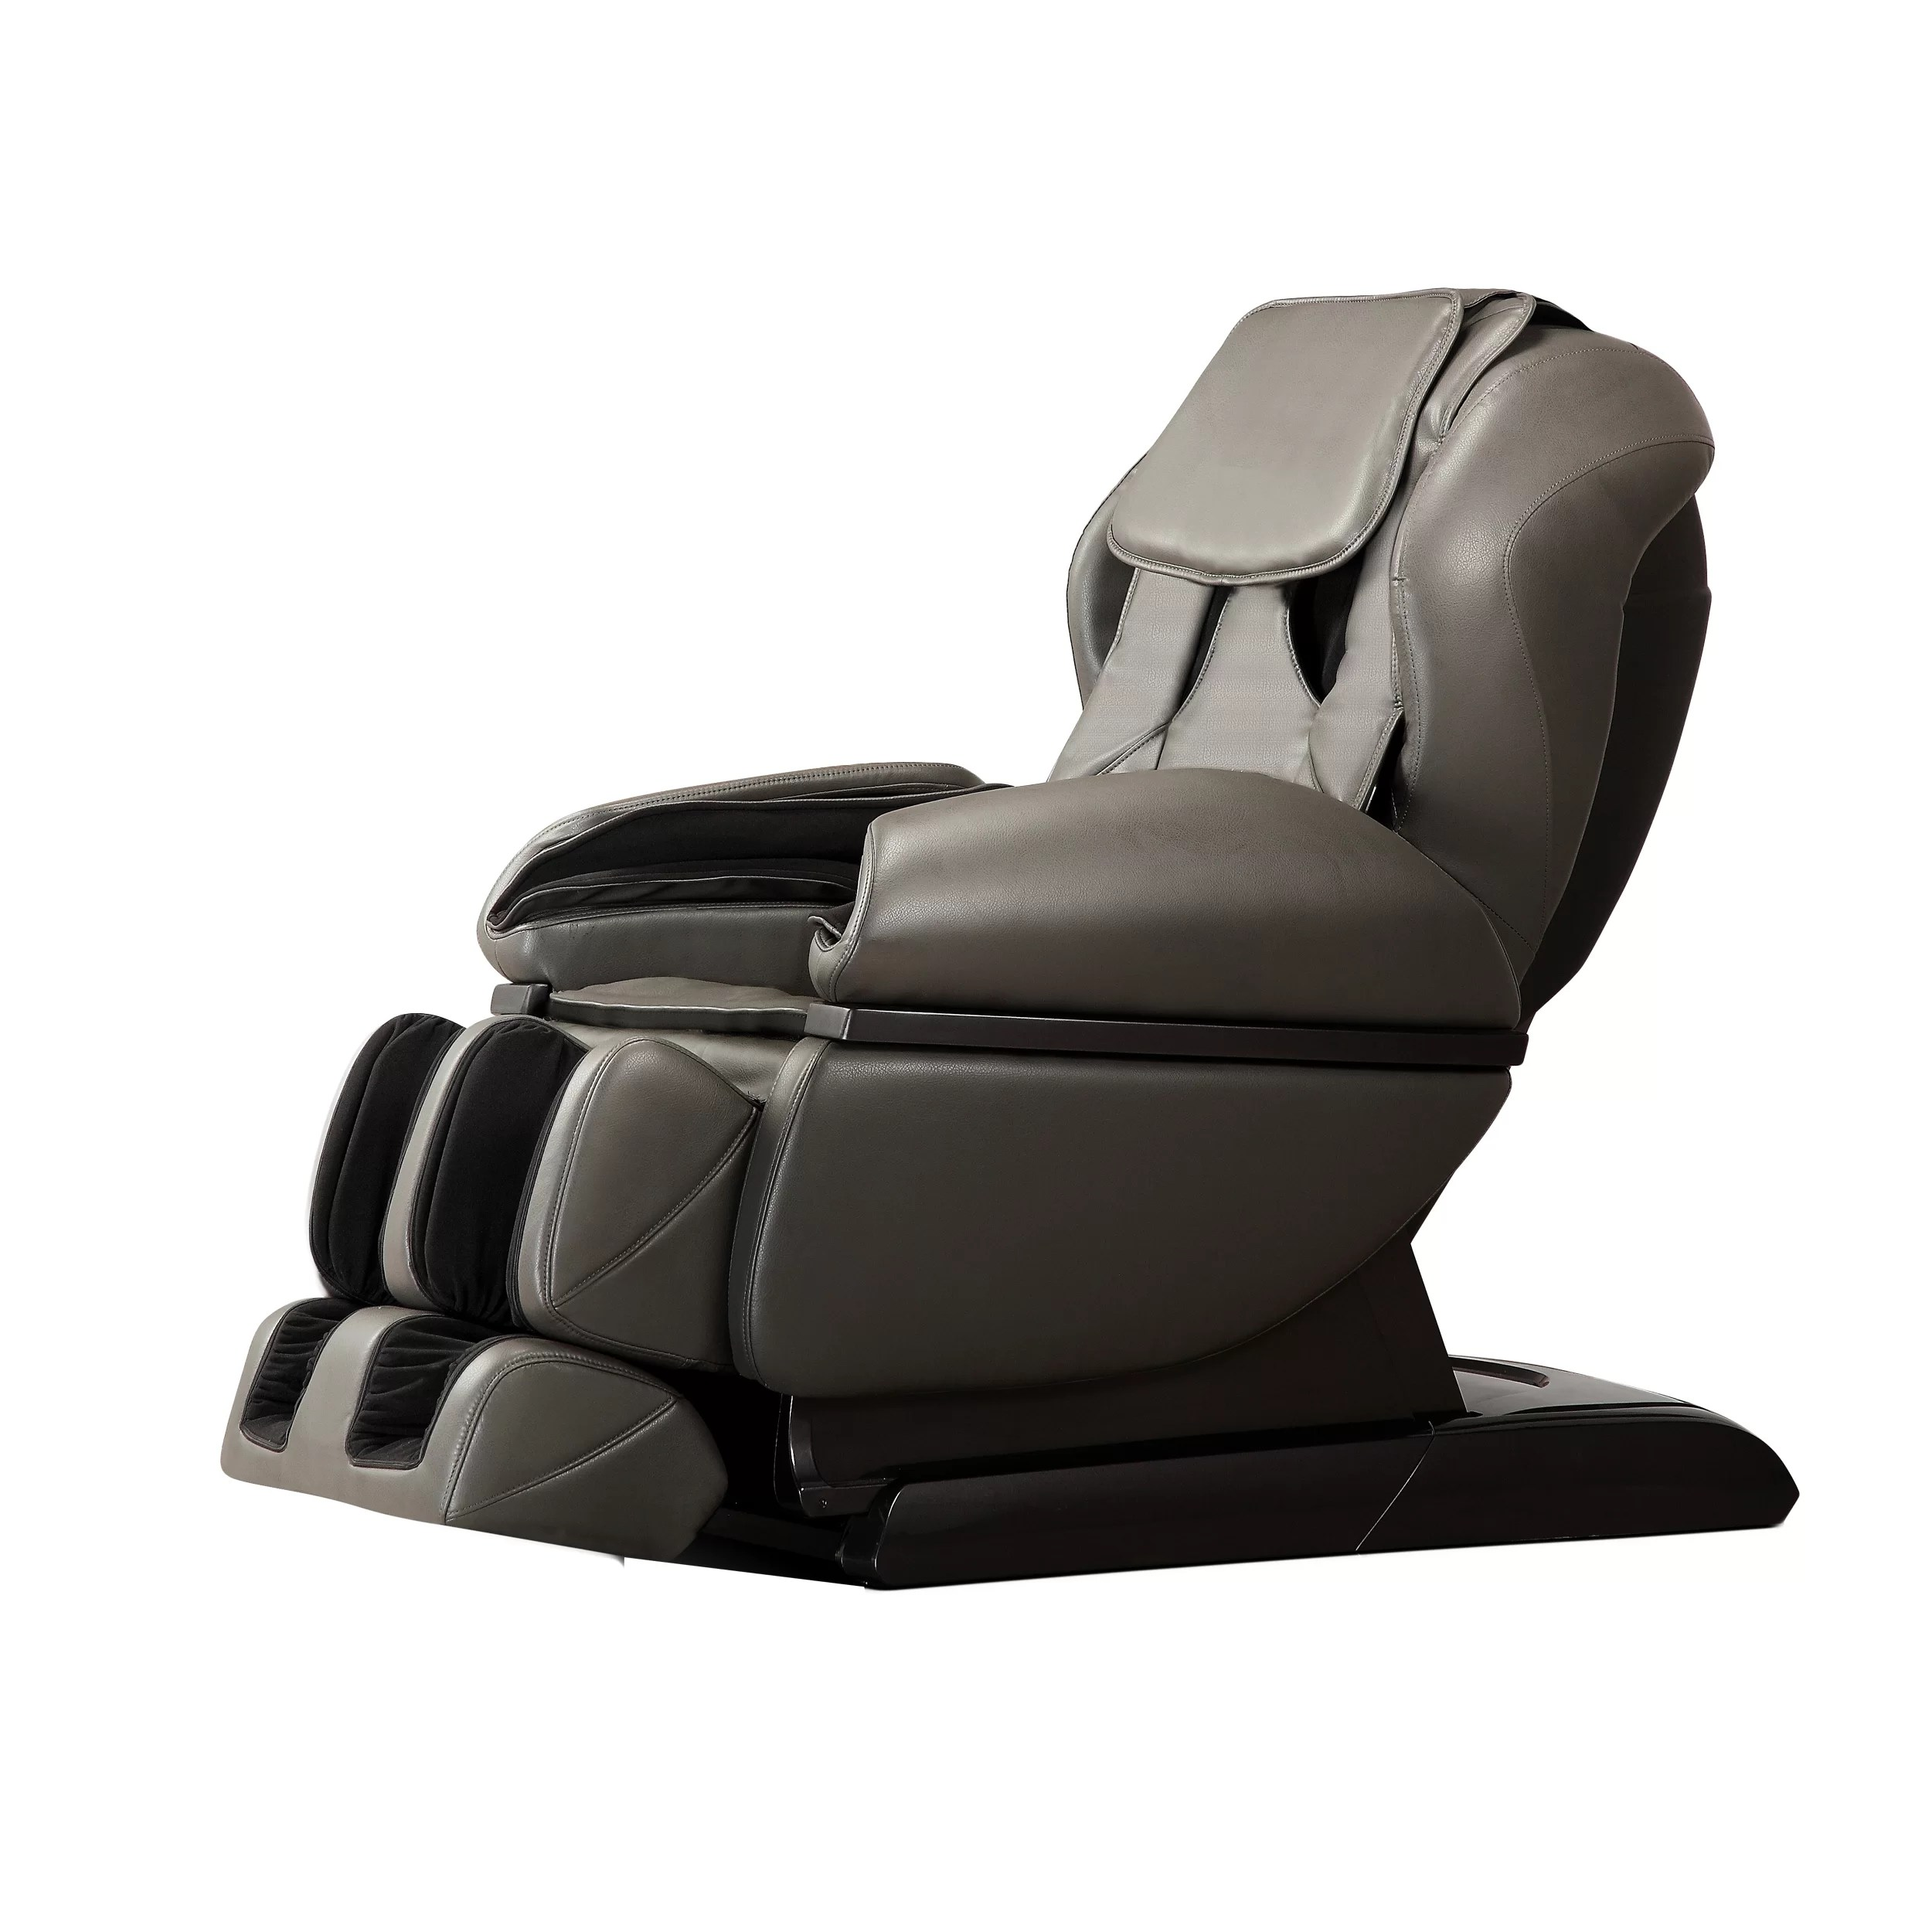 massage zero gravity chair keilhauer simple latitude run reclining heated wayfair